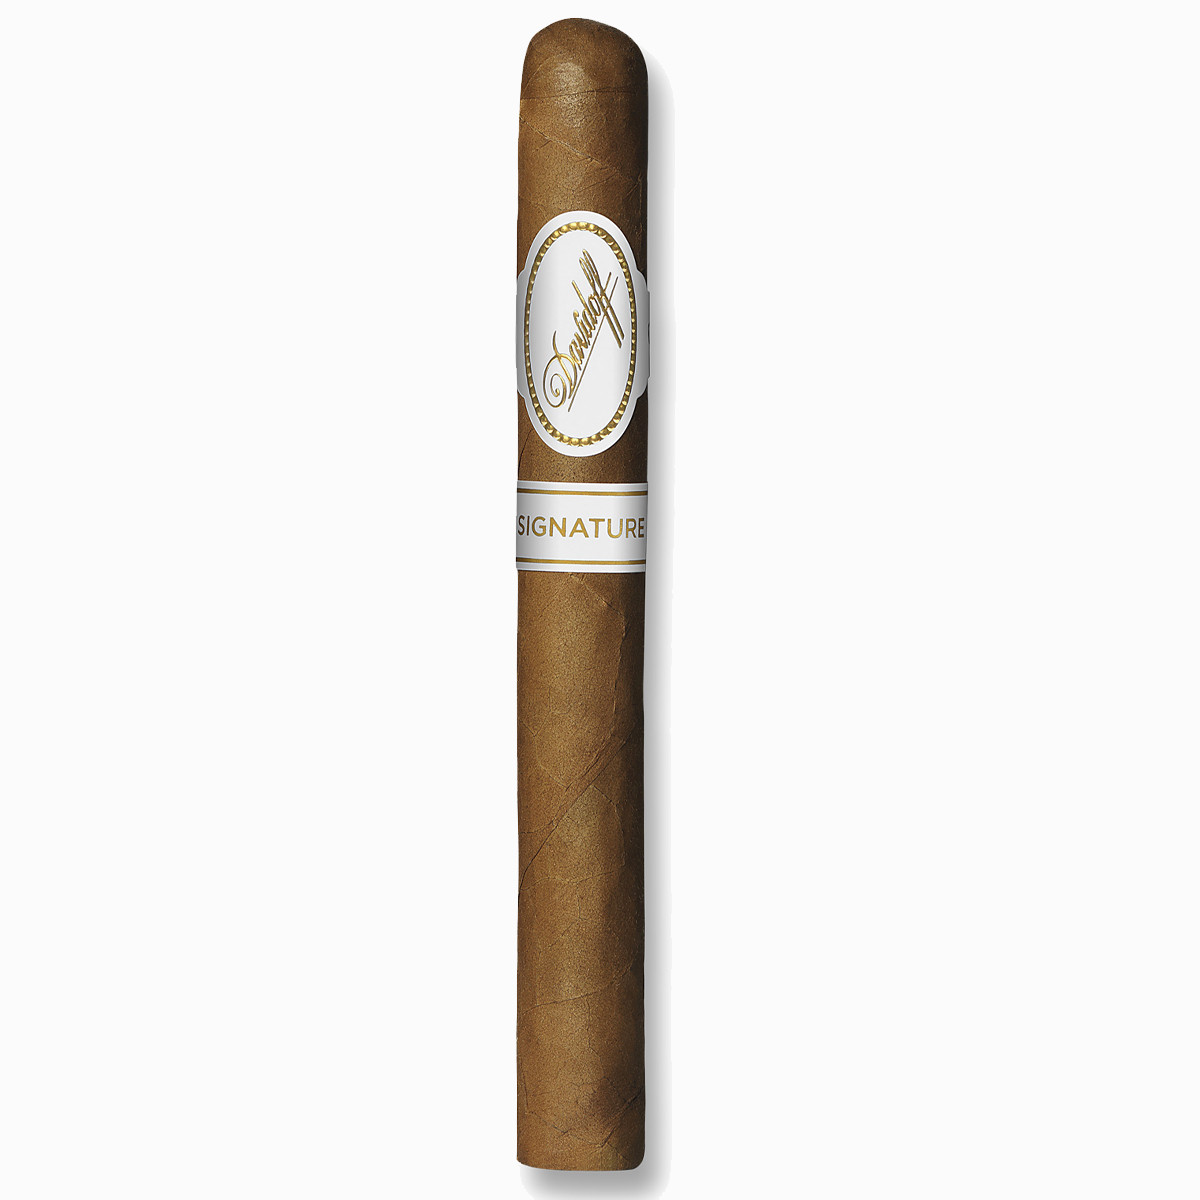 Davidoff Signature 1000 (4.6x34 / Single)